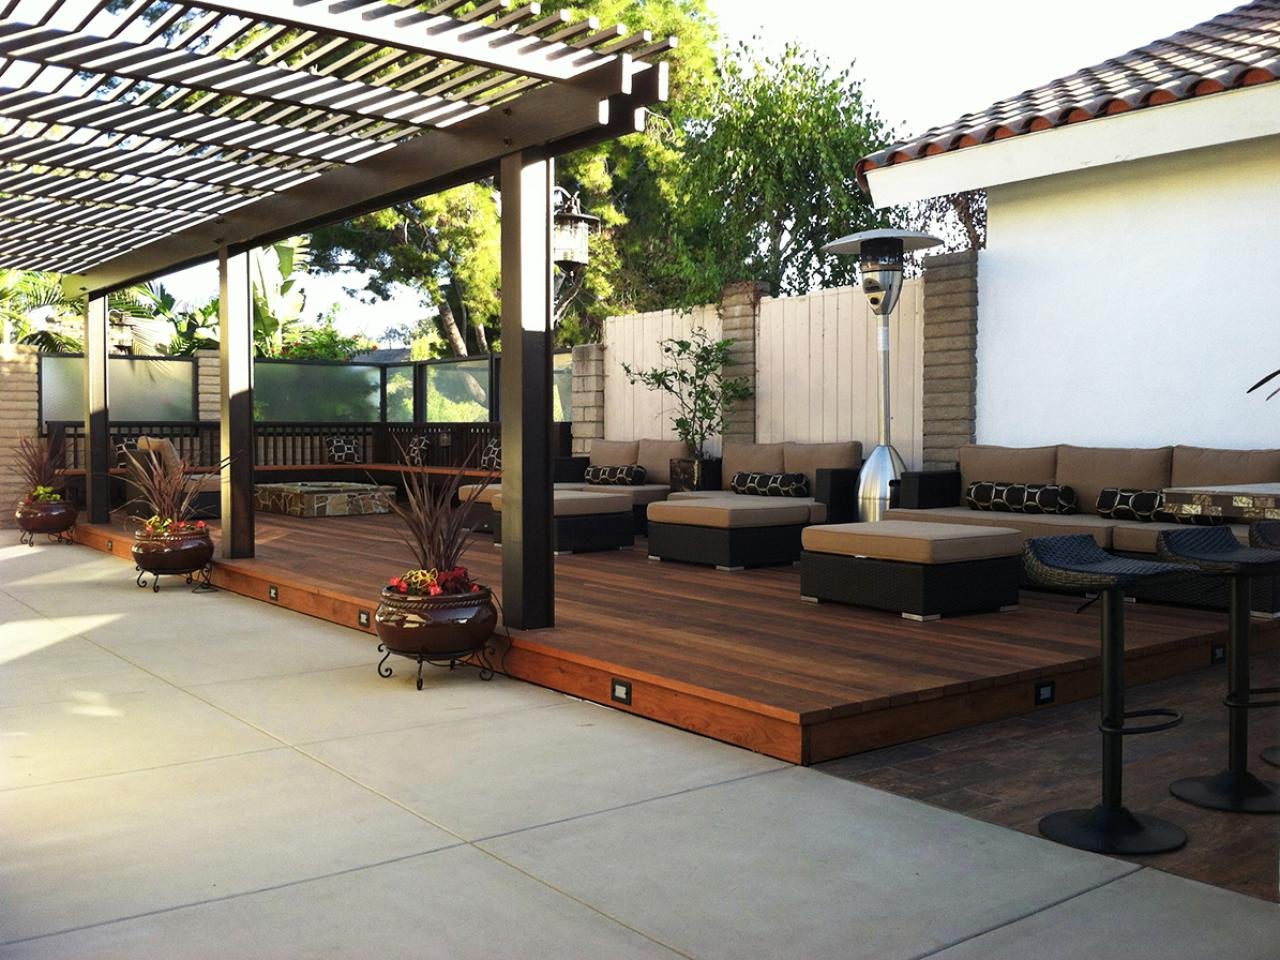 Deck design ideas outdoor spaces patio ideas decks Deck design ideas